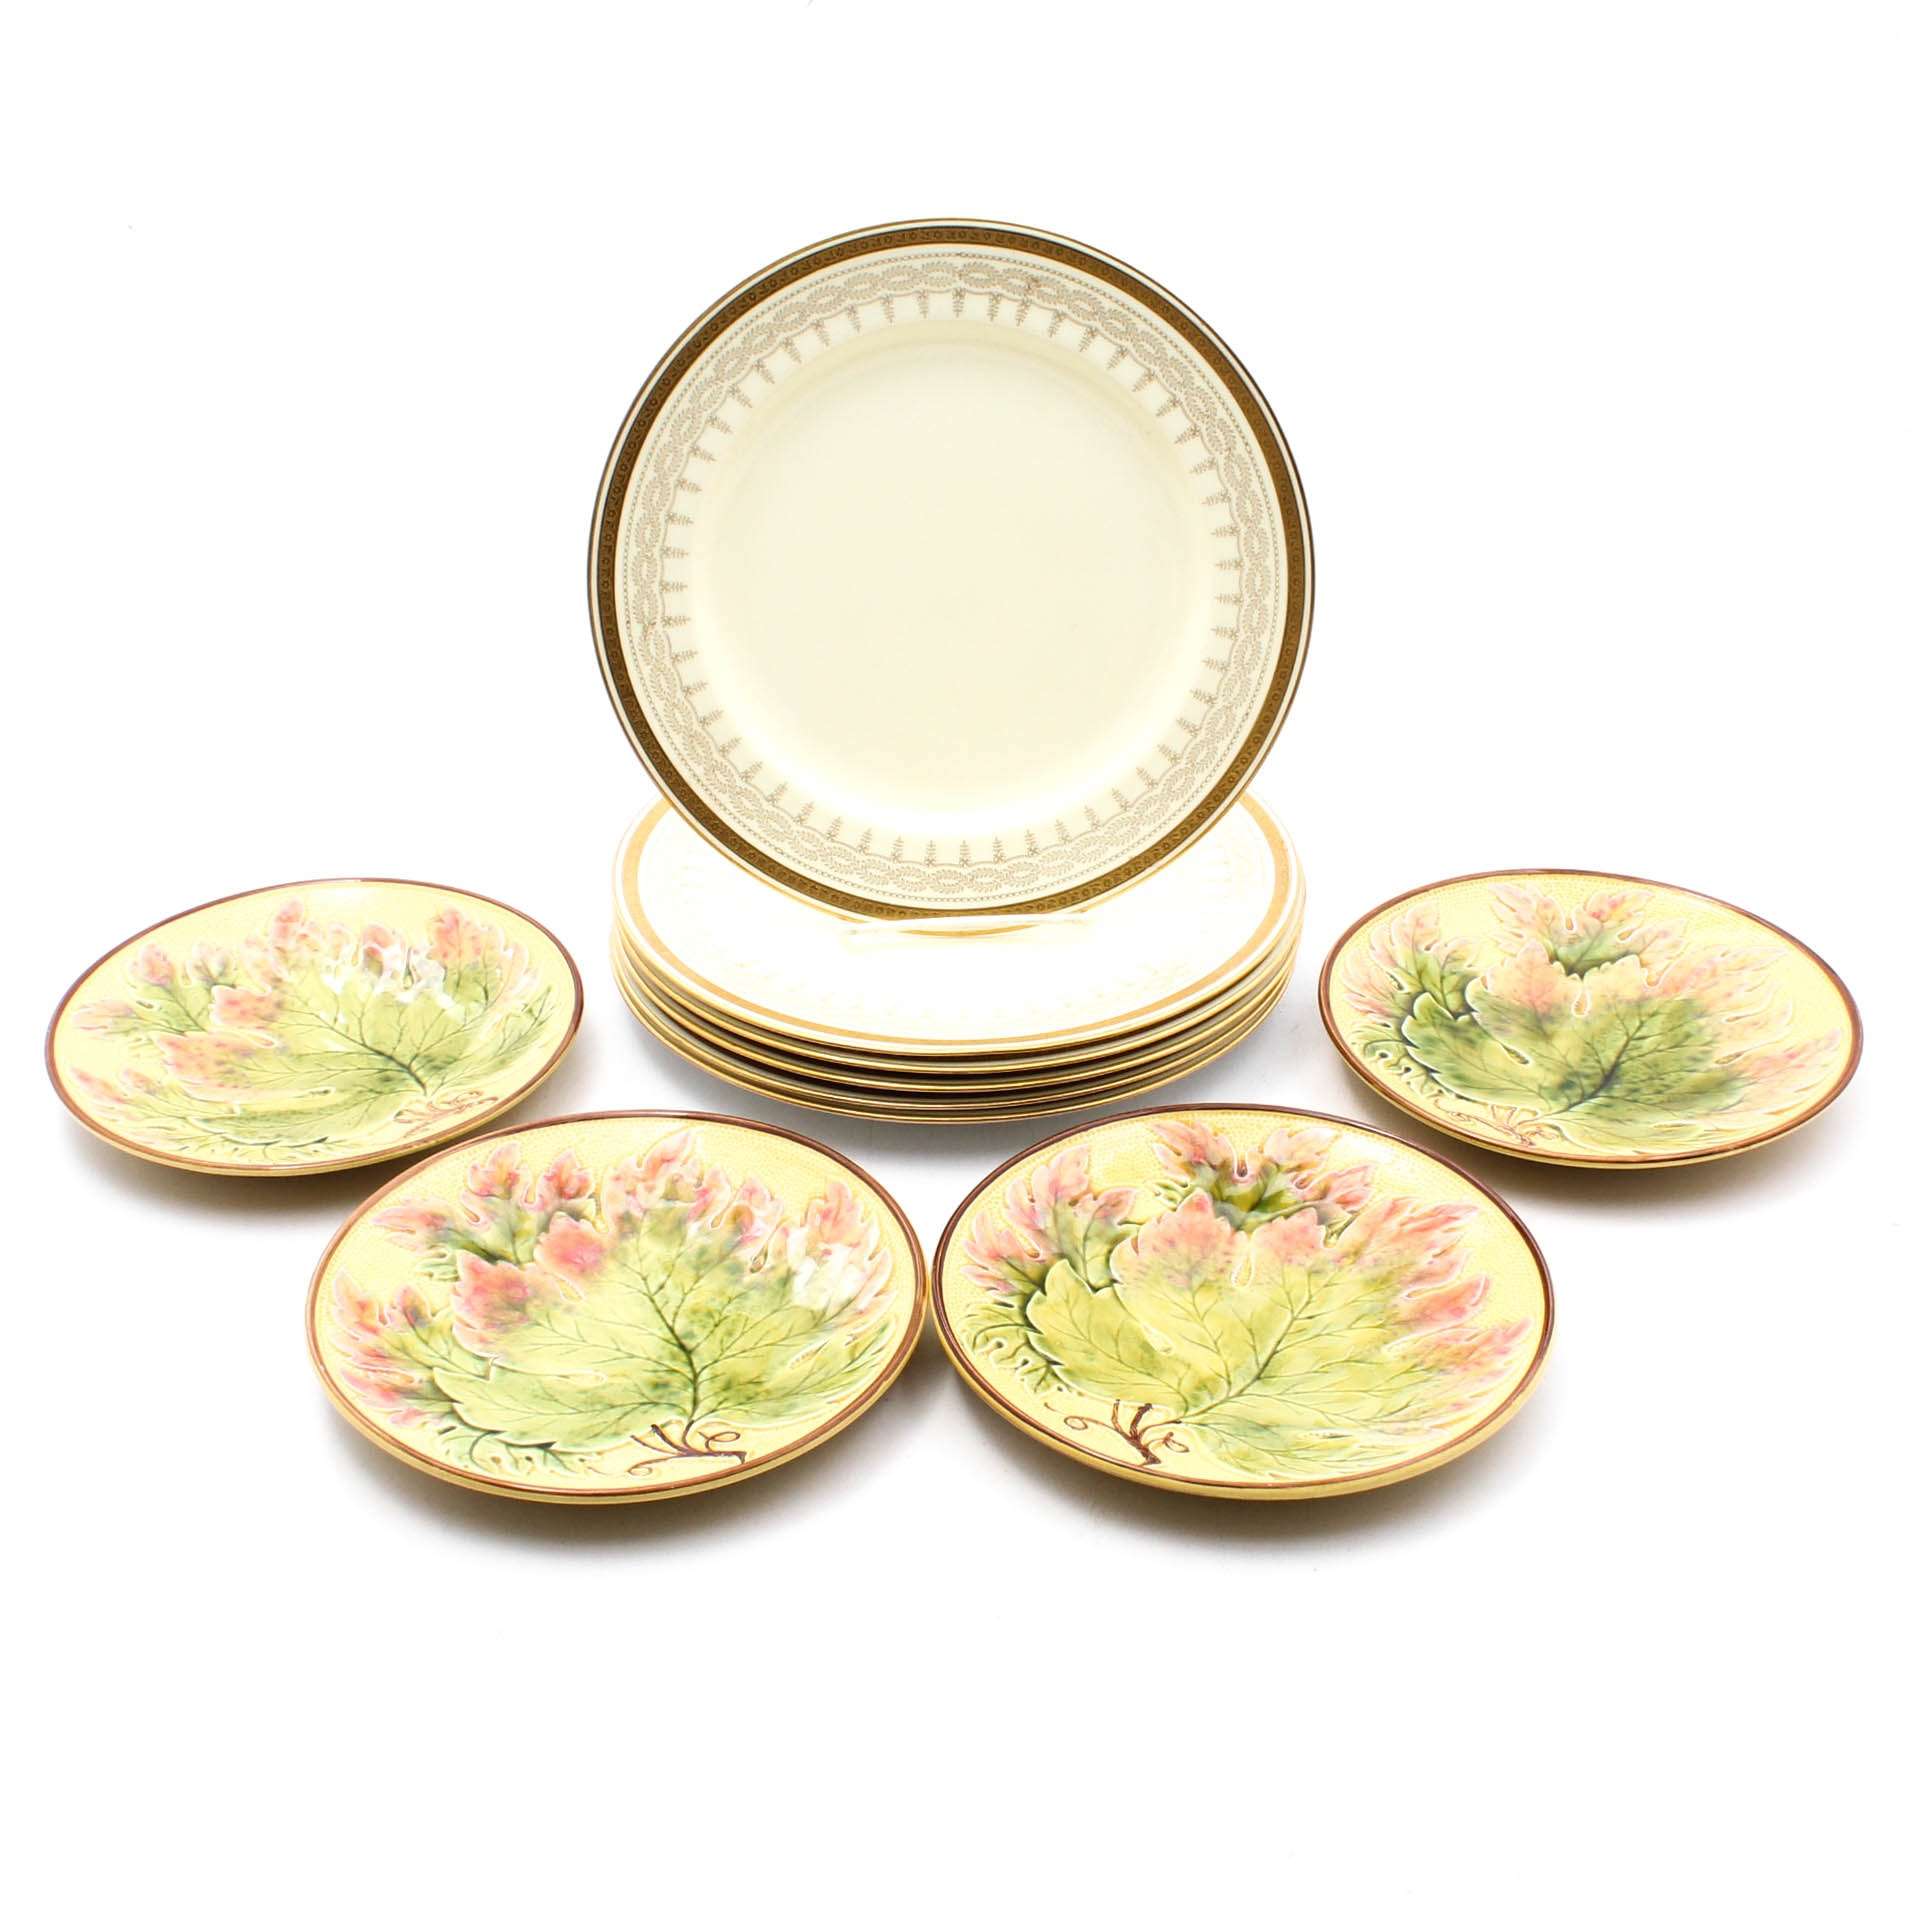 Cauldon Bone China Dinner Plates with Majolica Style Leaf Plates